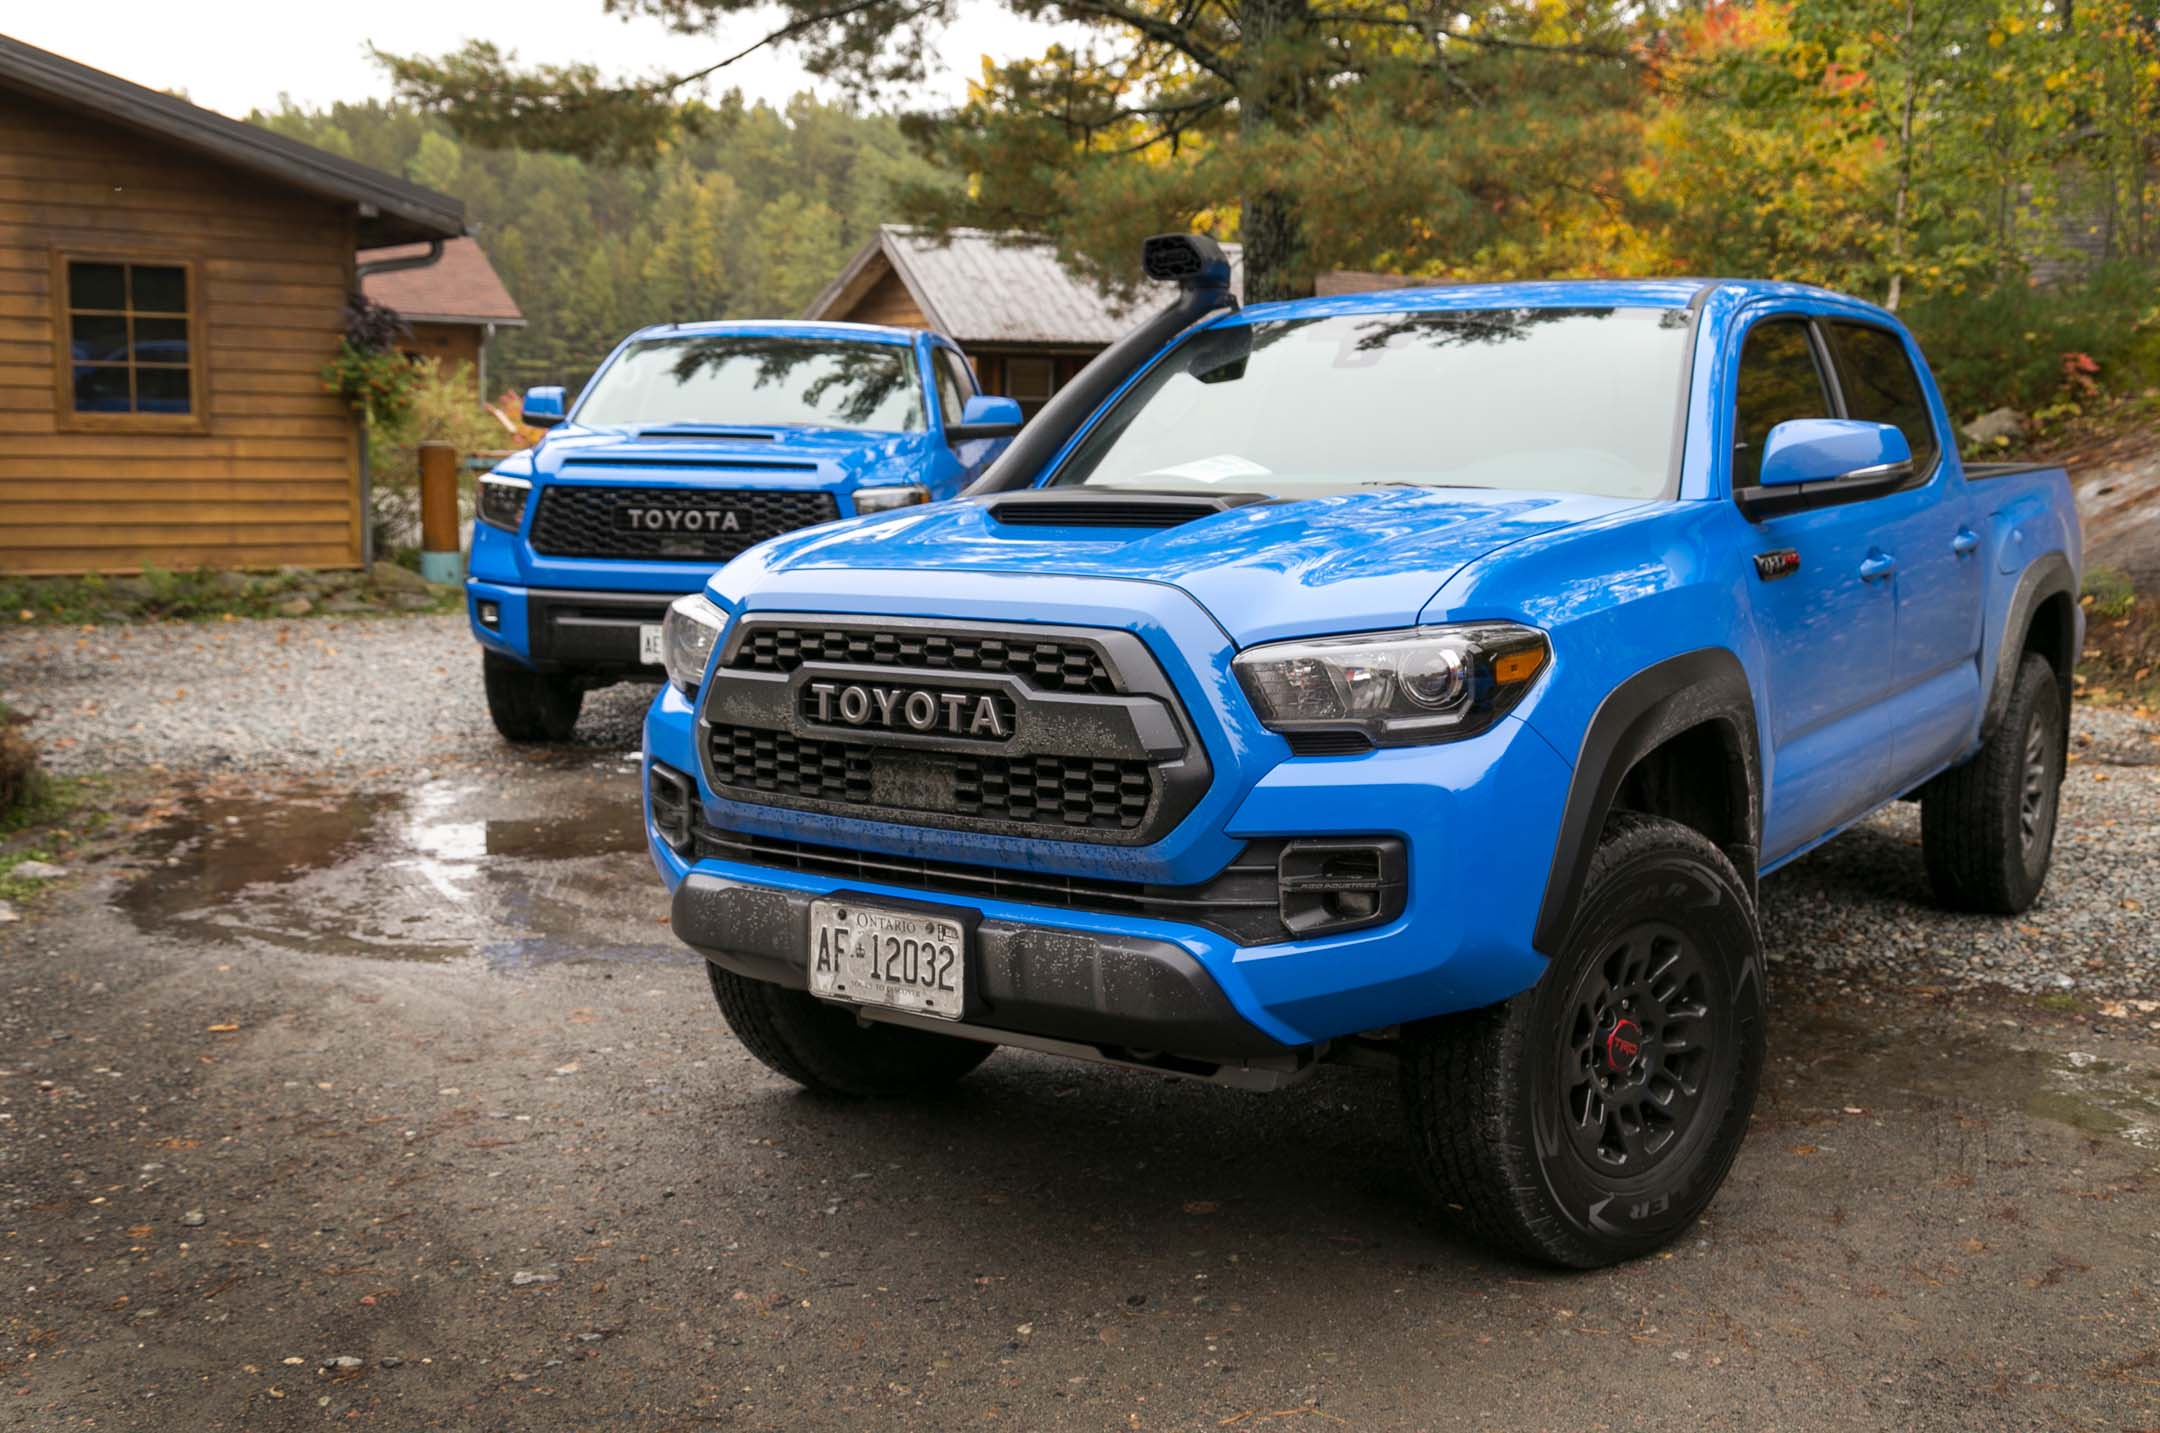 2019 Toyota Tacoma Tundra 4runner Trd Pro First Drive Review